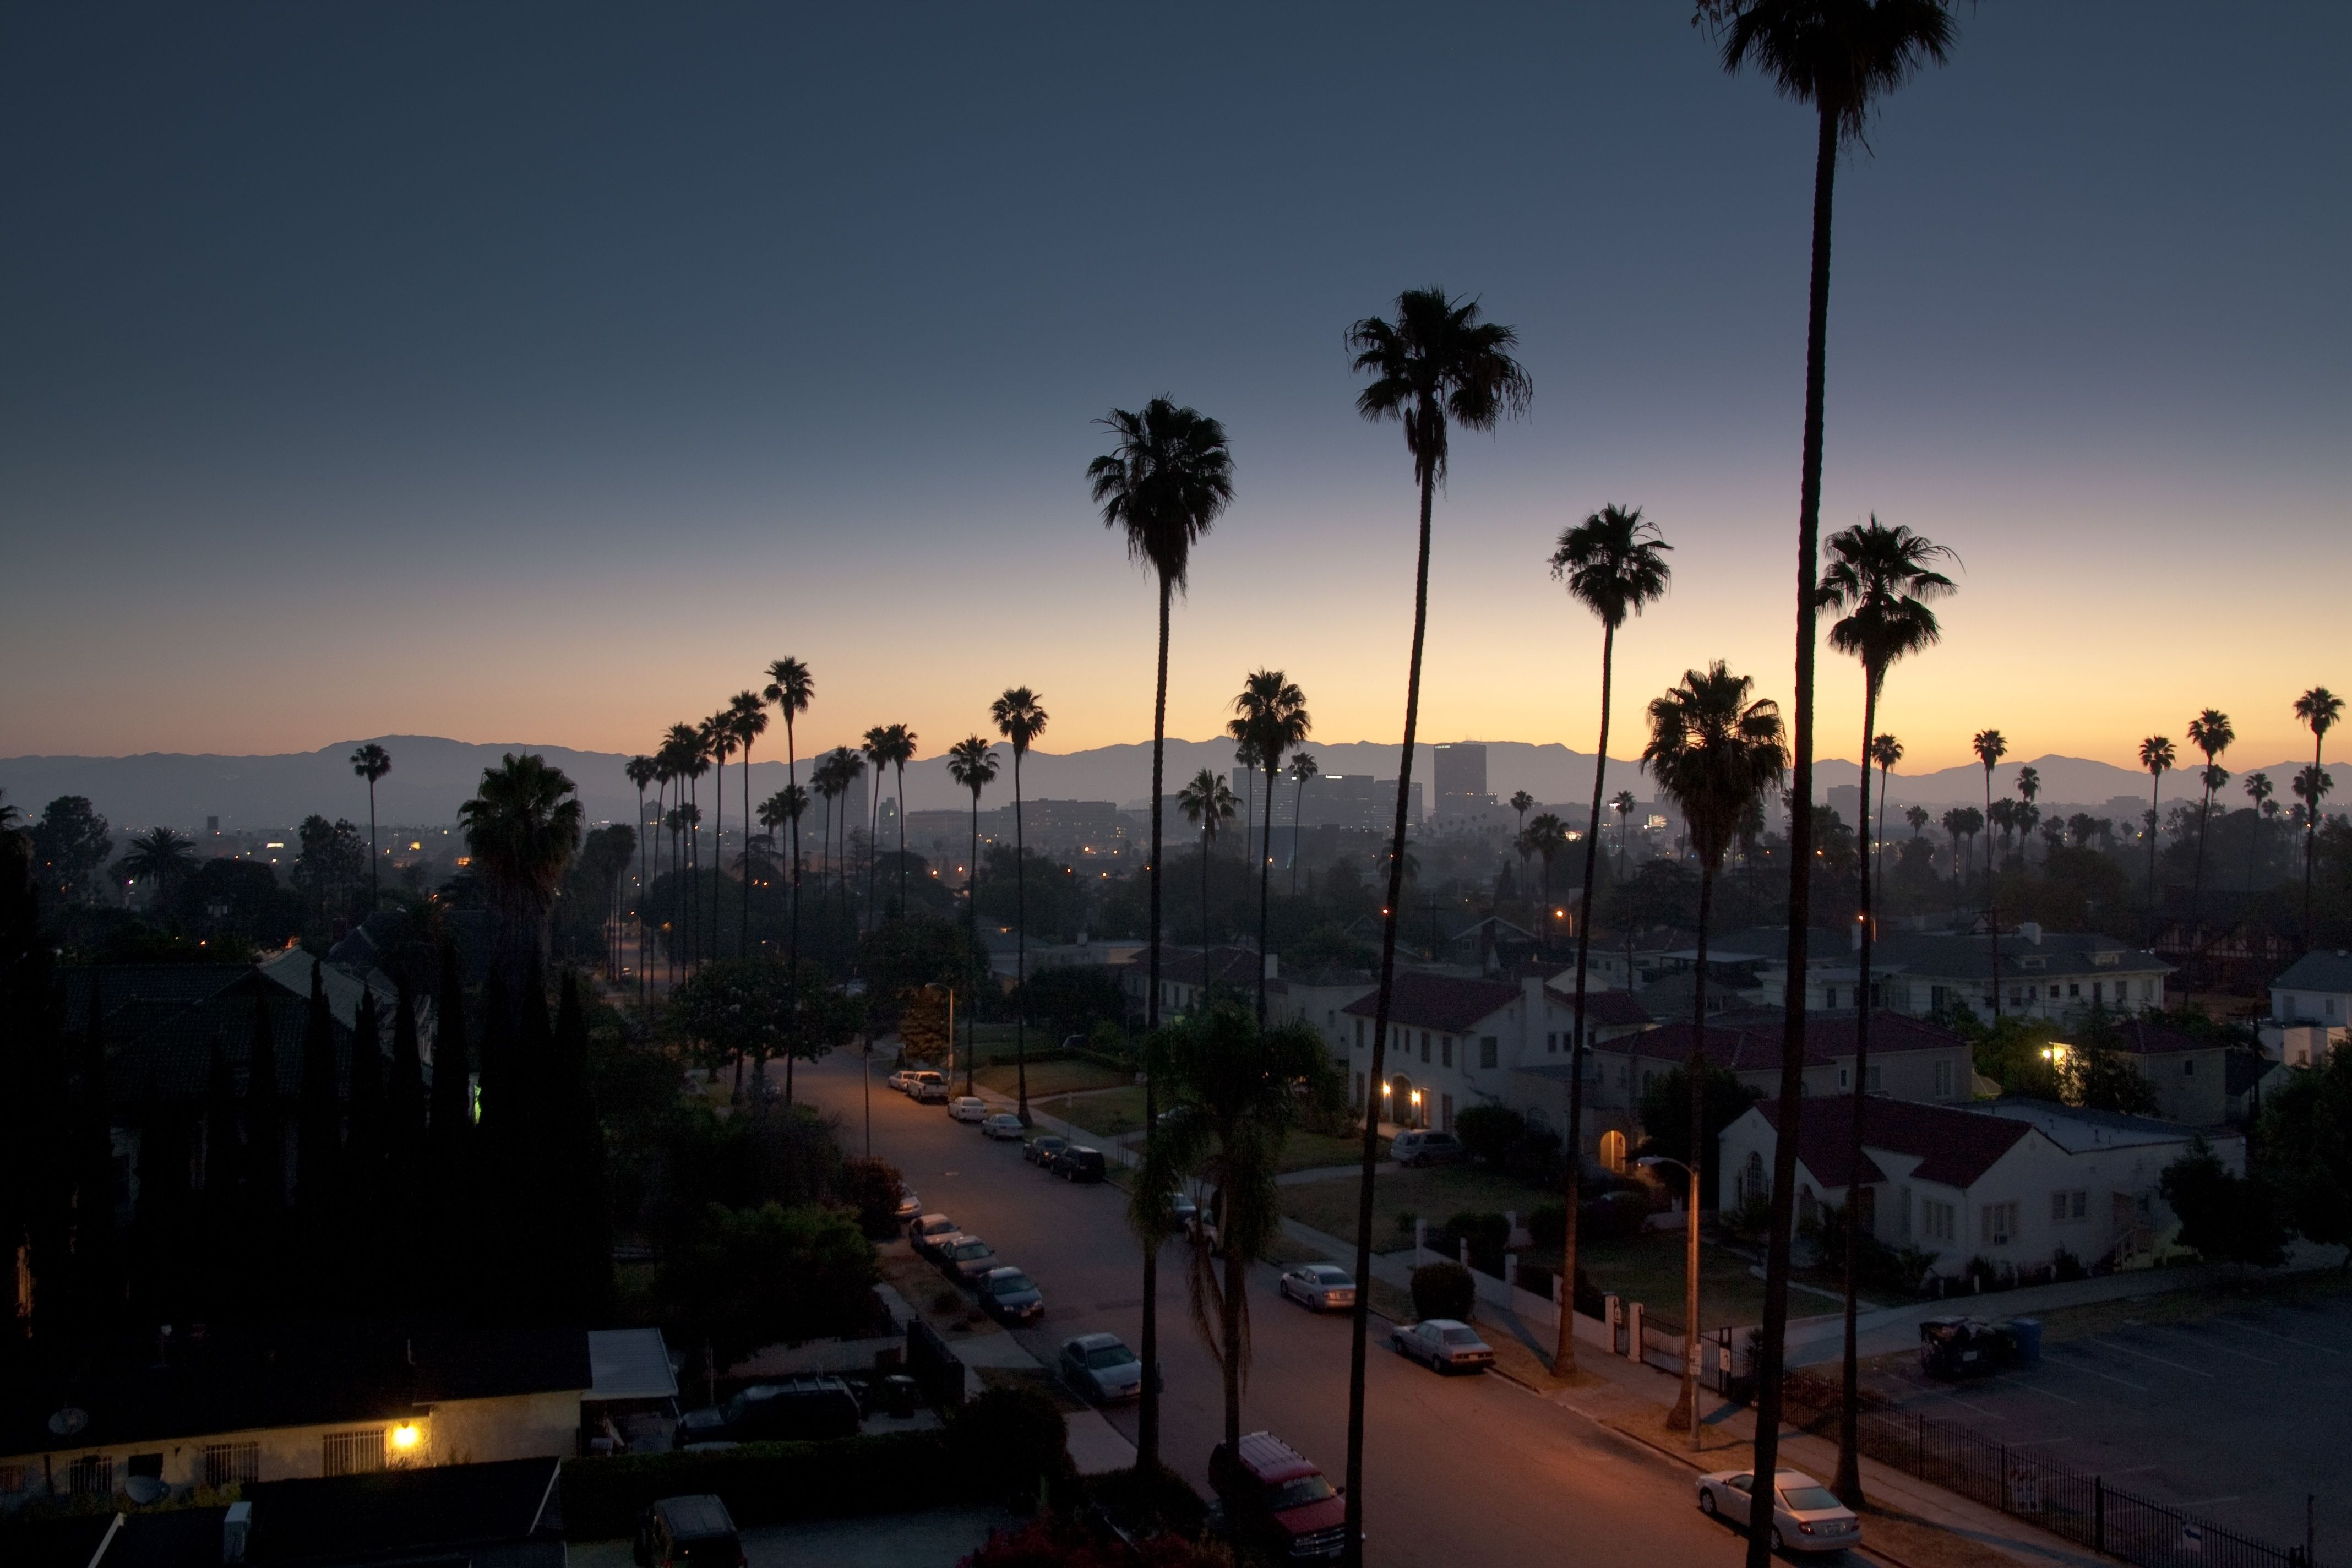 10 Top Los Angeles Hd Wallpaper Full Hd 1080p For Pc Desktop Los Angeles Wallpaper Los Angeles Palm Trees City Landscape